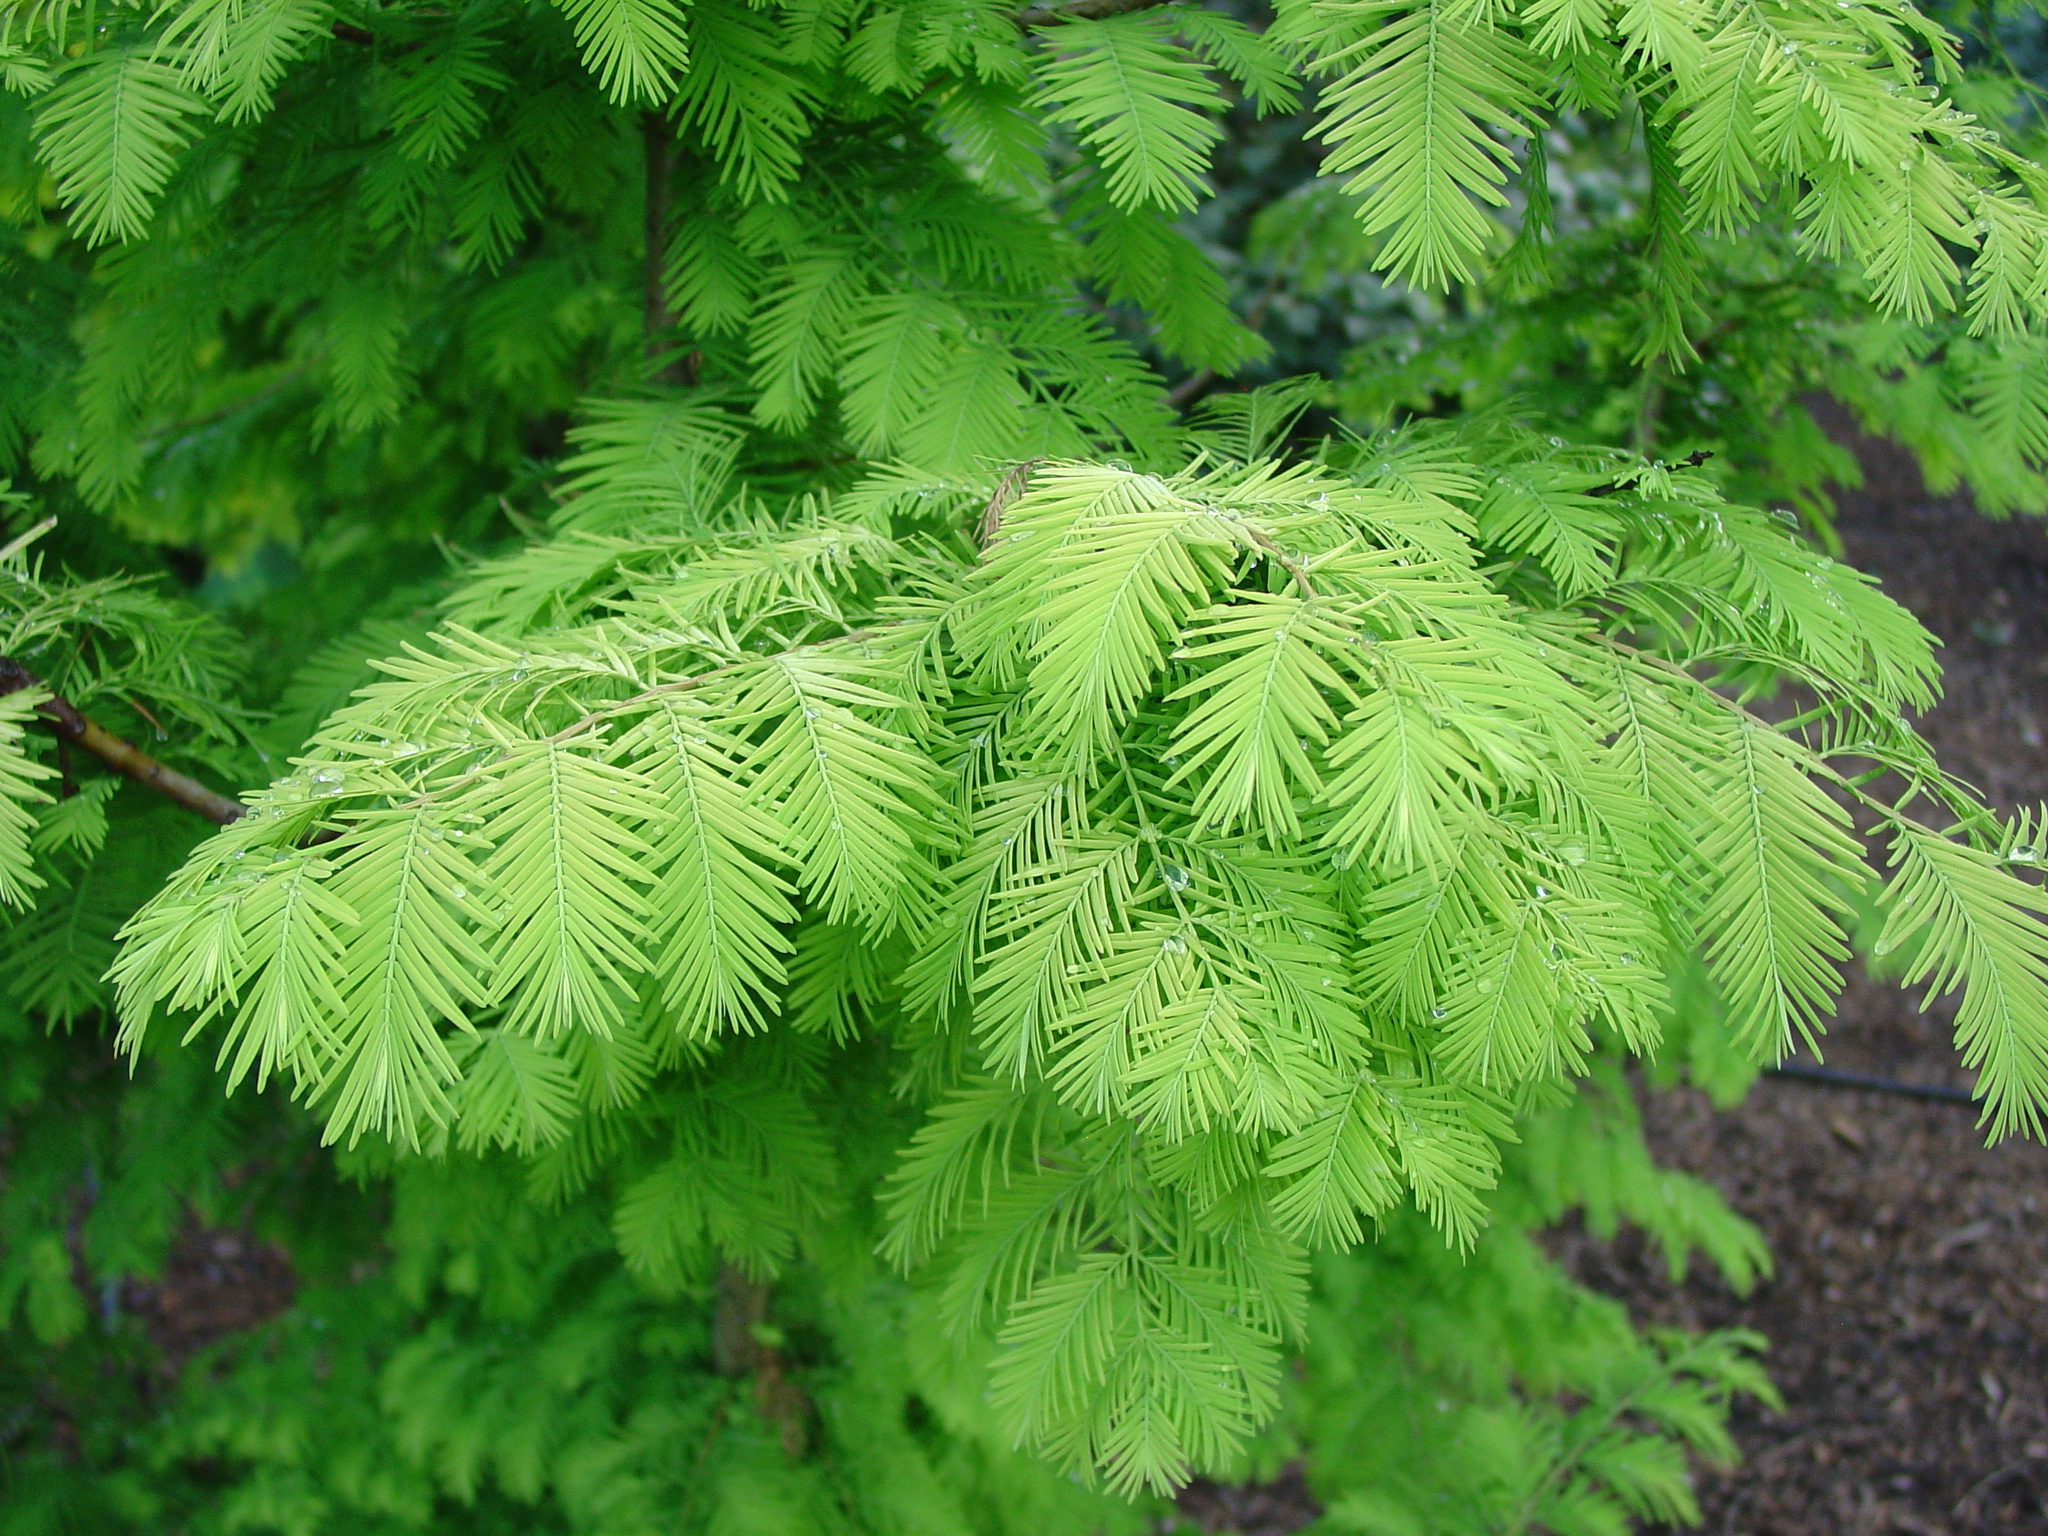 Dawn Redwoods are known for the beautiful, soft green needle foliage but were once thought to be extinct.